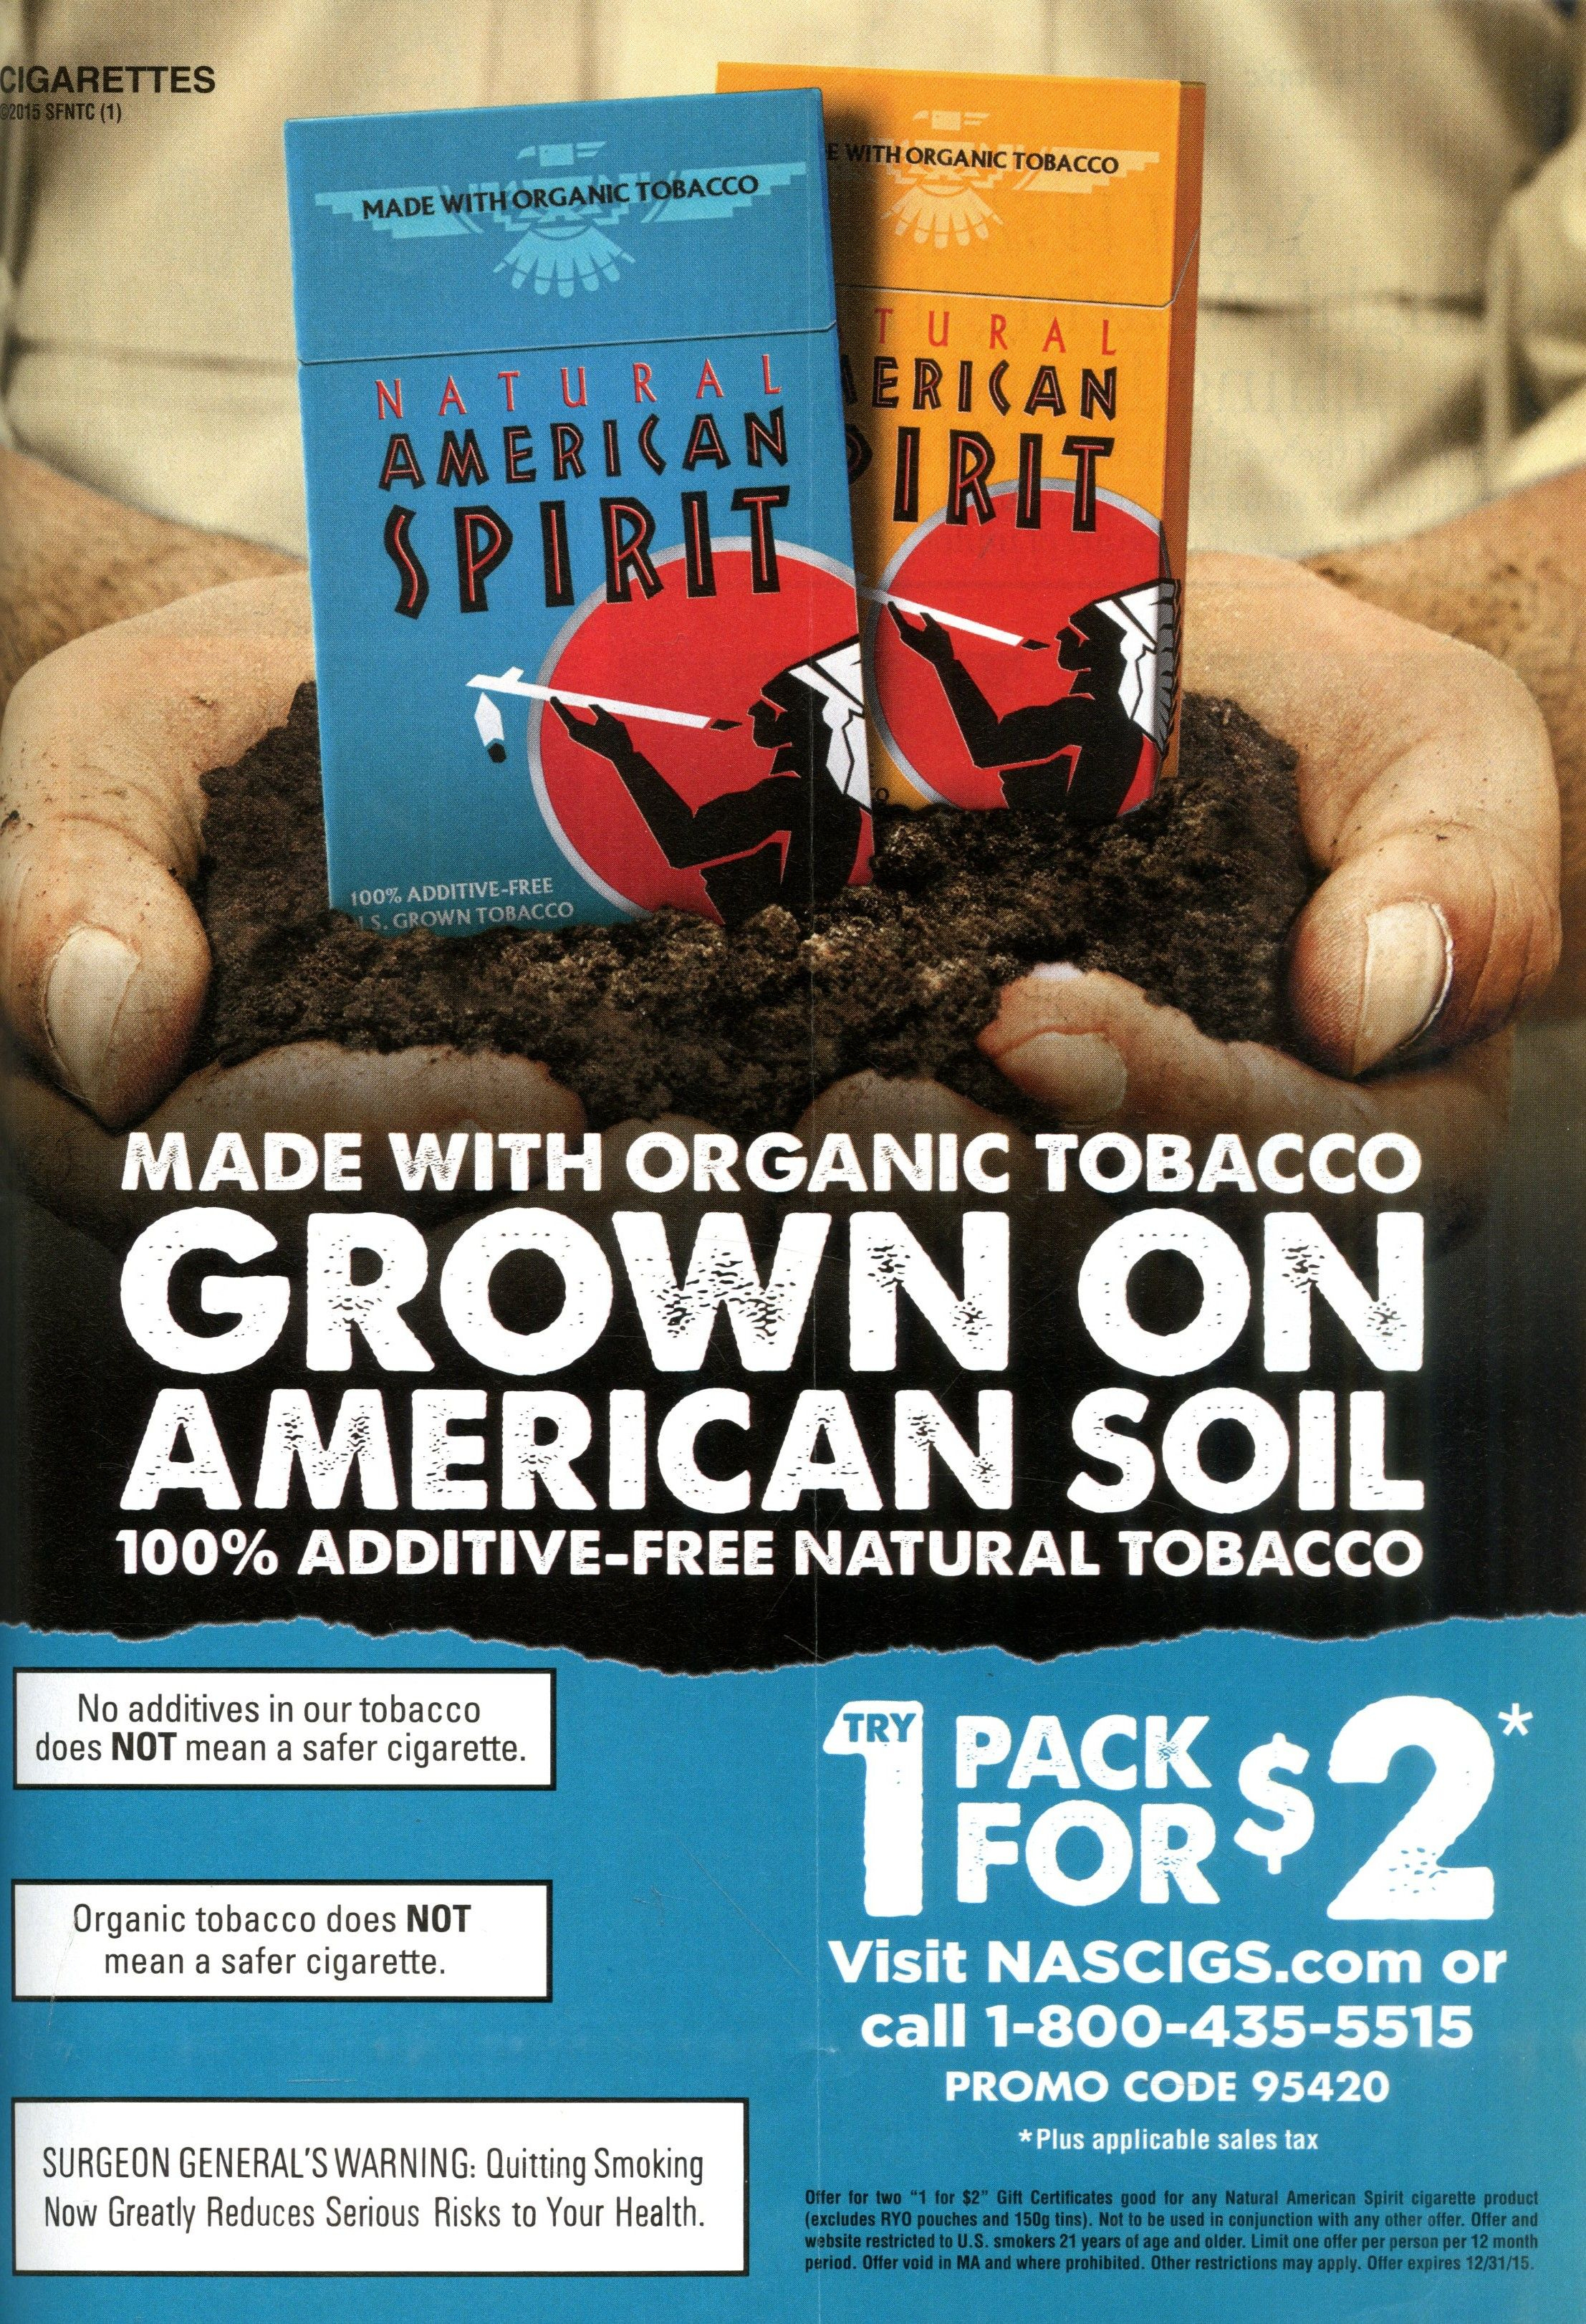 8. Natural American Spirit Cigarettes Source: Glamour, Mar. 2015 - Free Printable Newport Cigarette Coupons